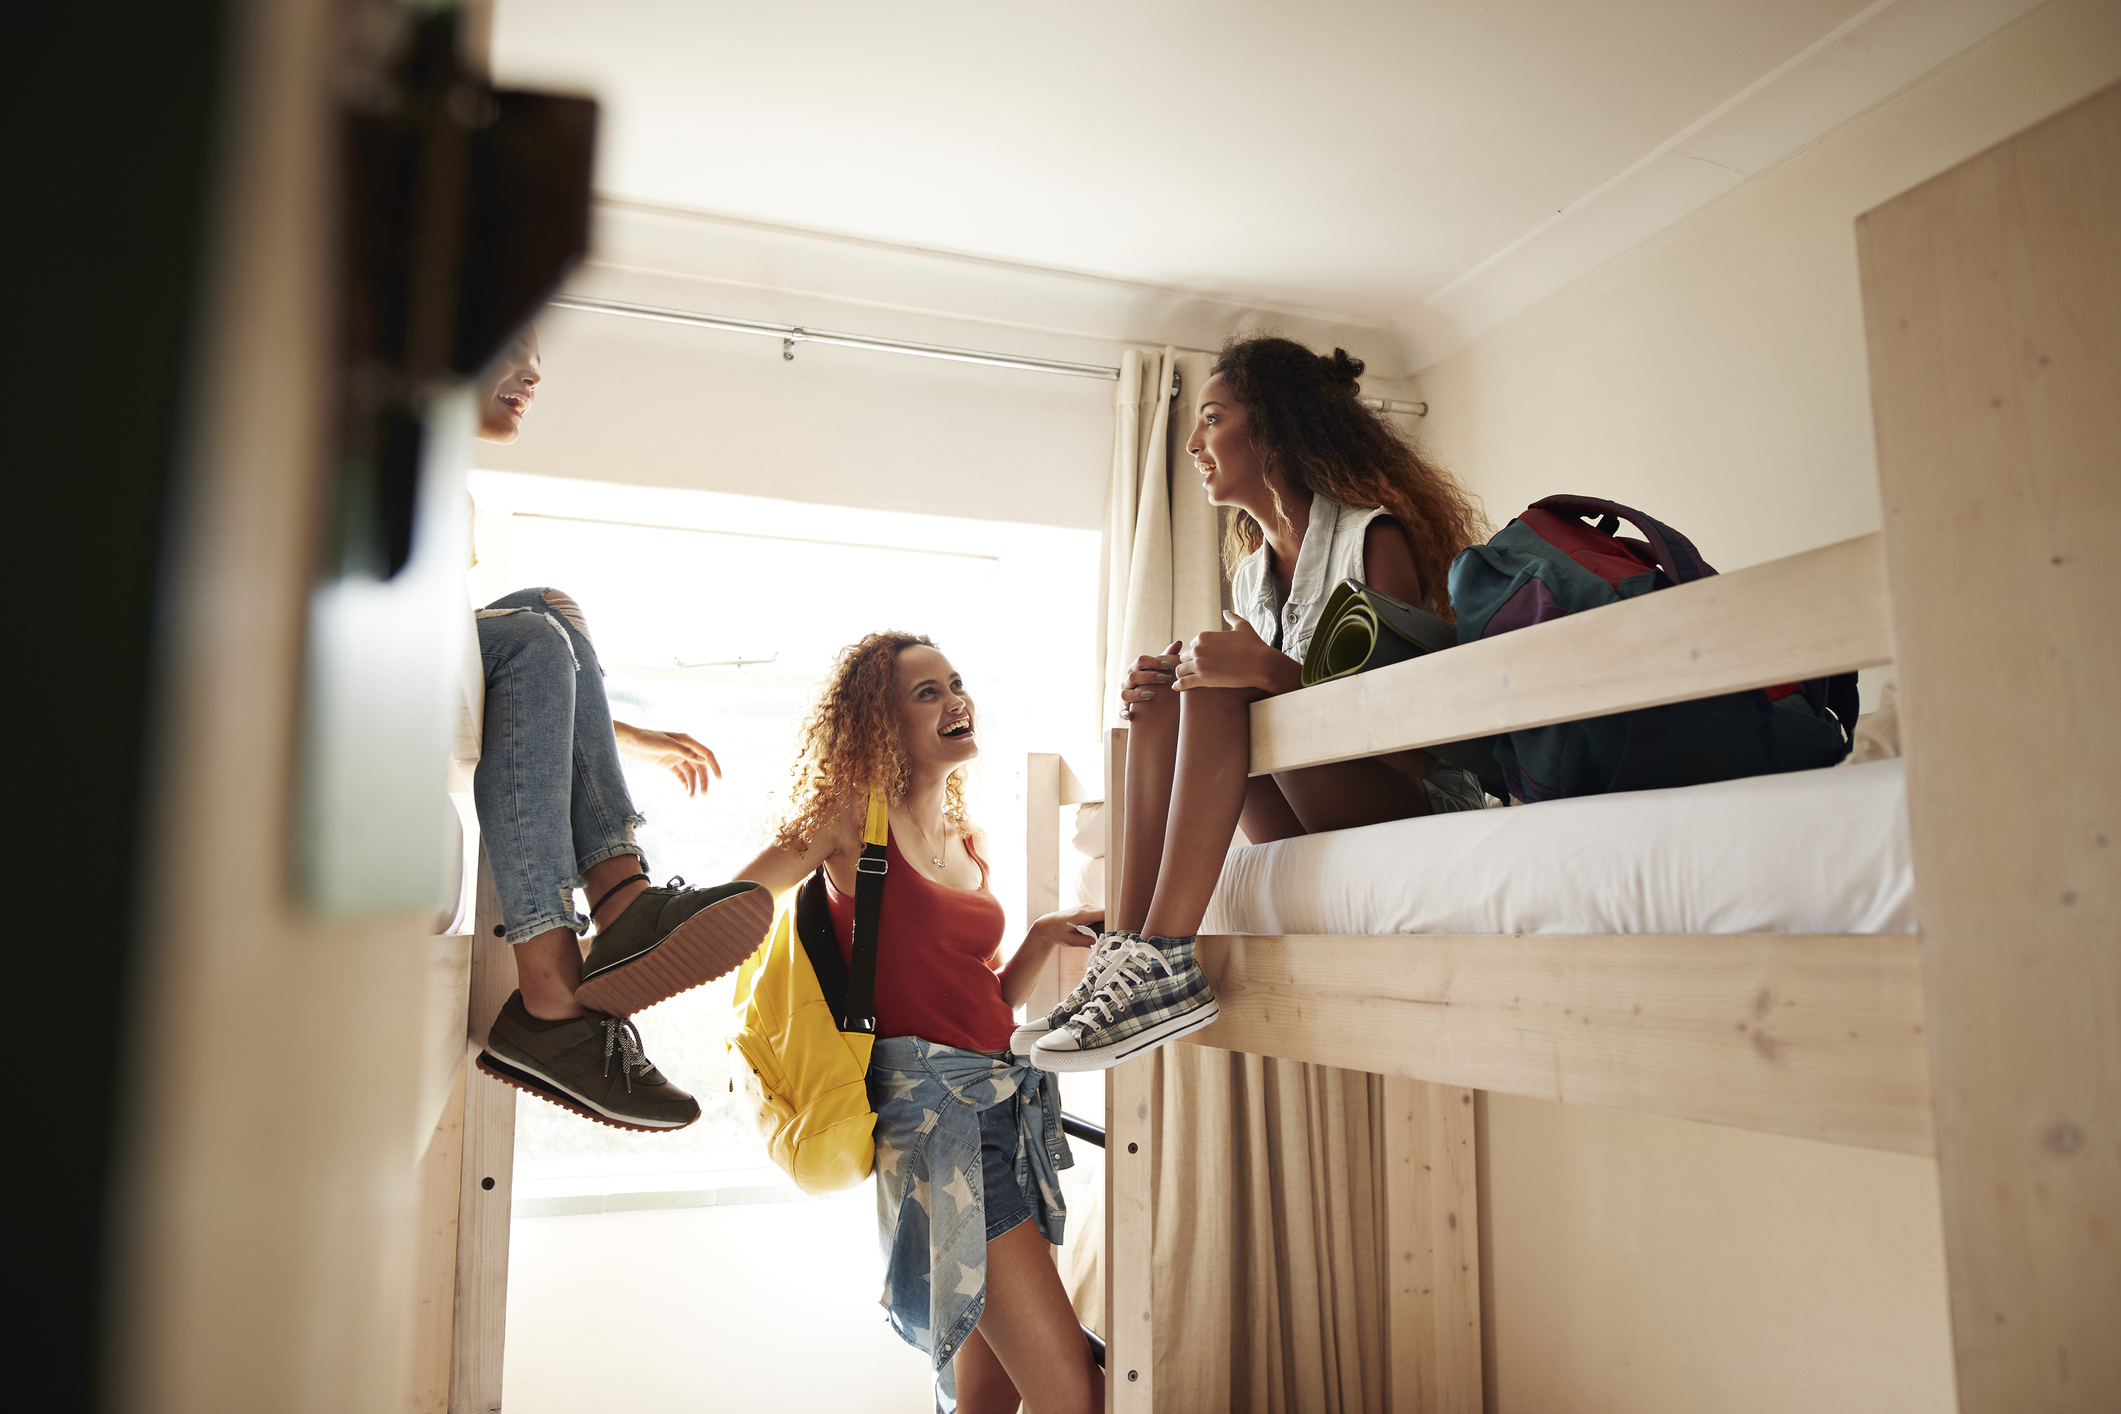 Young women arriving to room with bunk beds, at college dorm